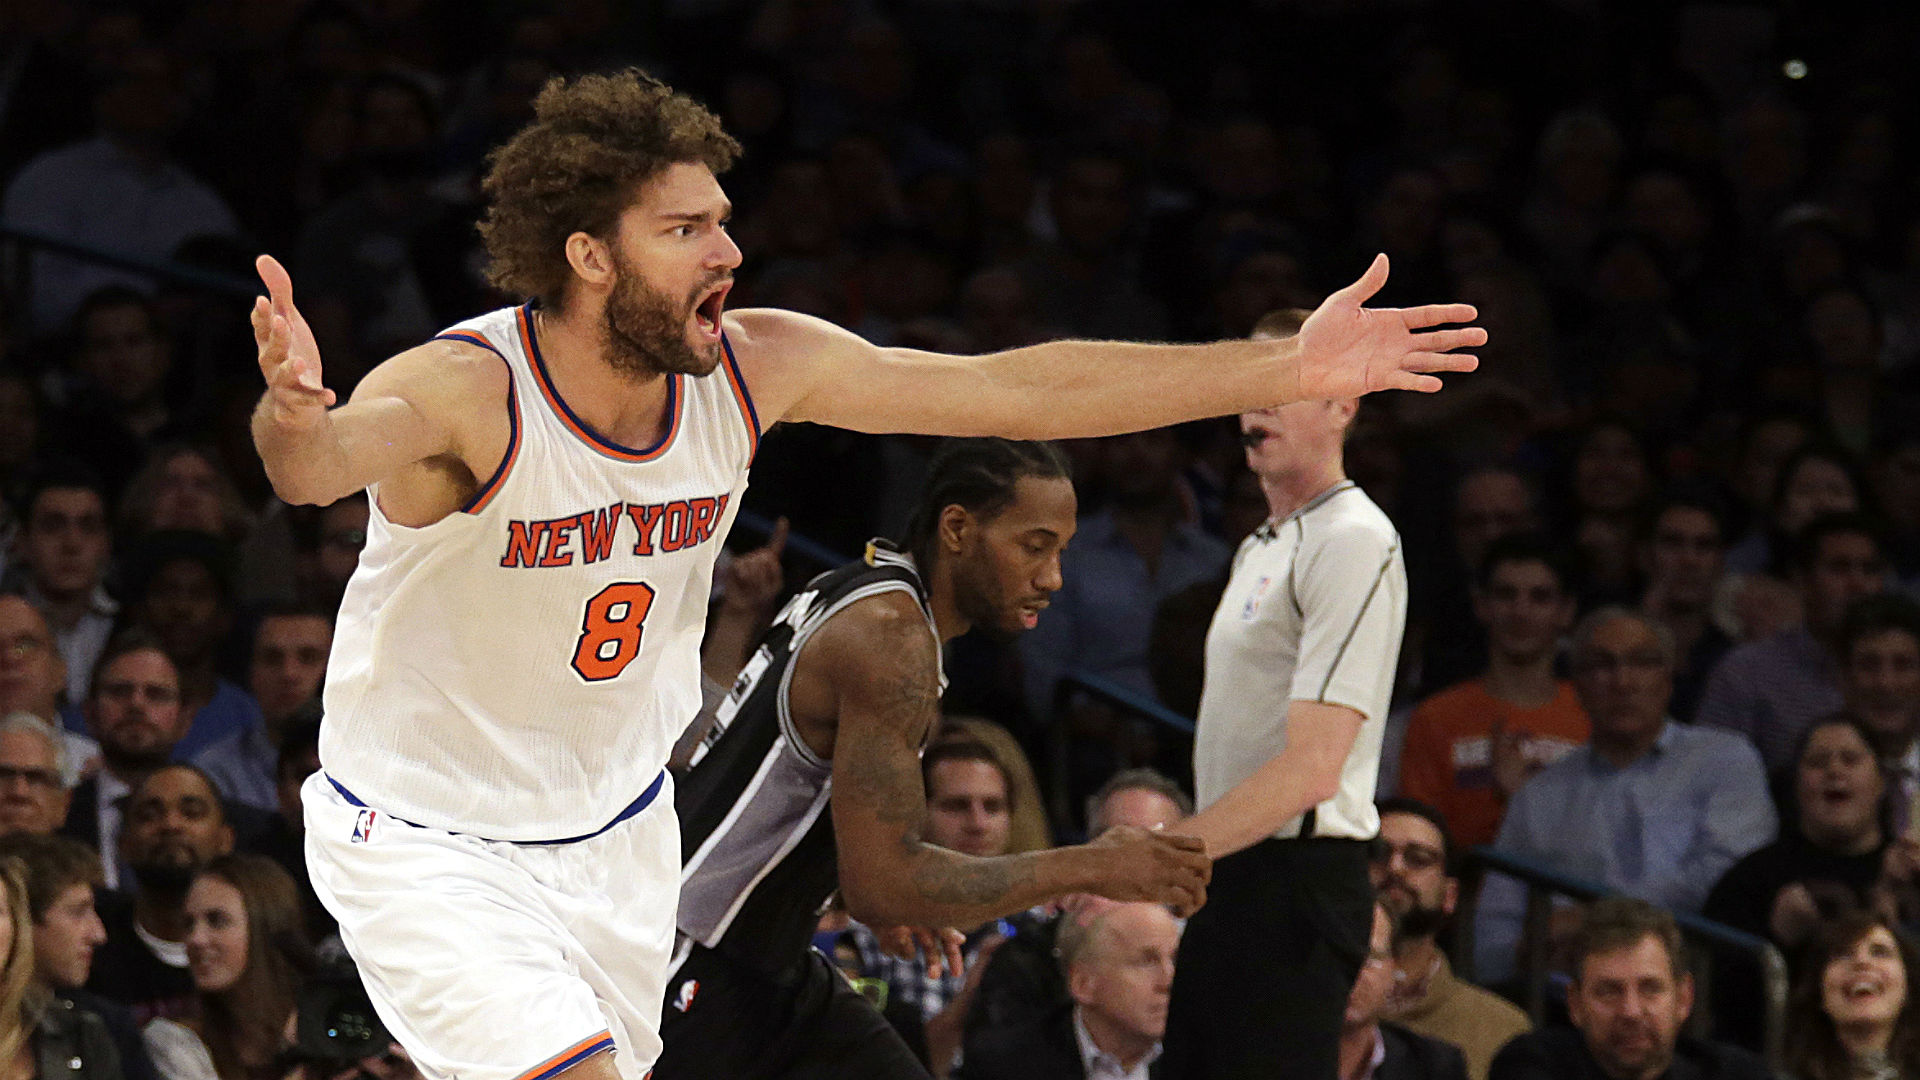 NBA betting lines, trends and picks – Knicks-Cavs clash, Clippers tangle with Warriors